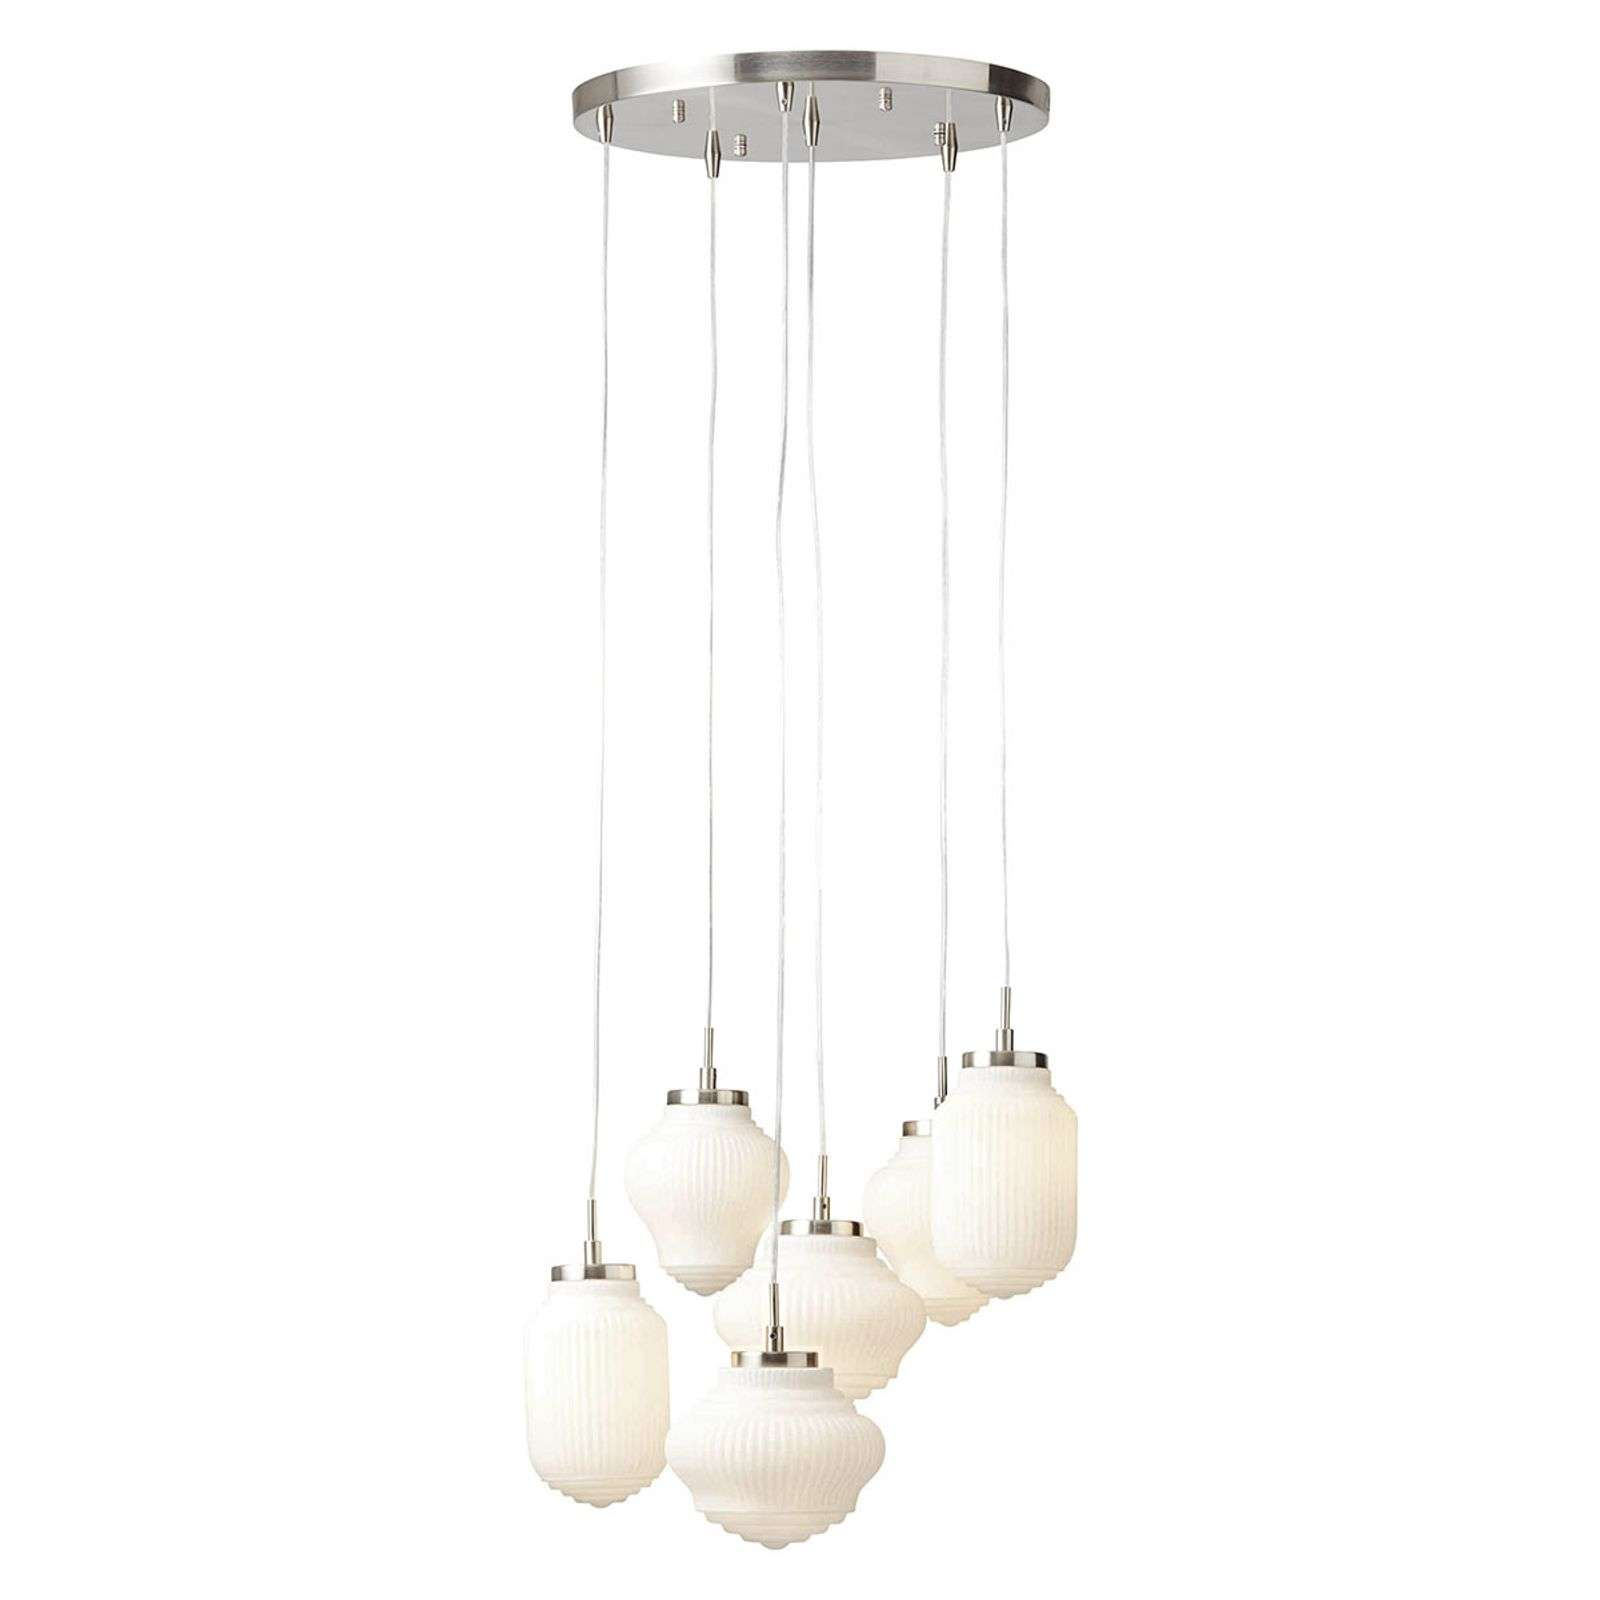 Suspension ronde Tanic 6 lampes, nickel + blanc